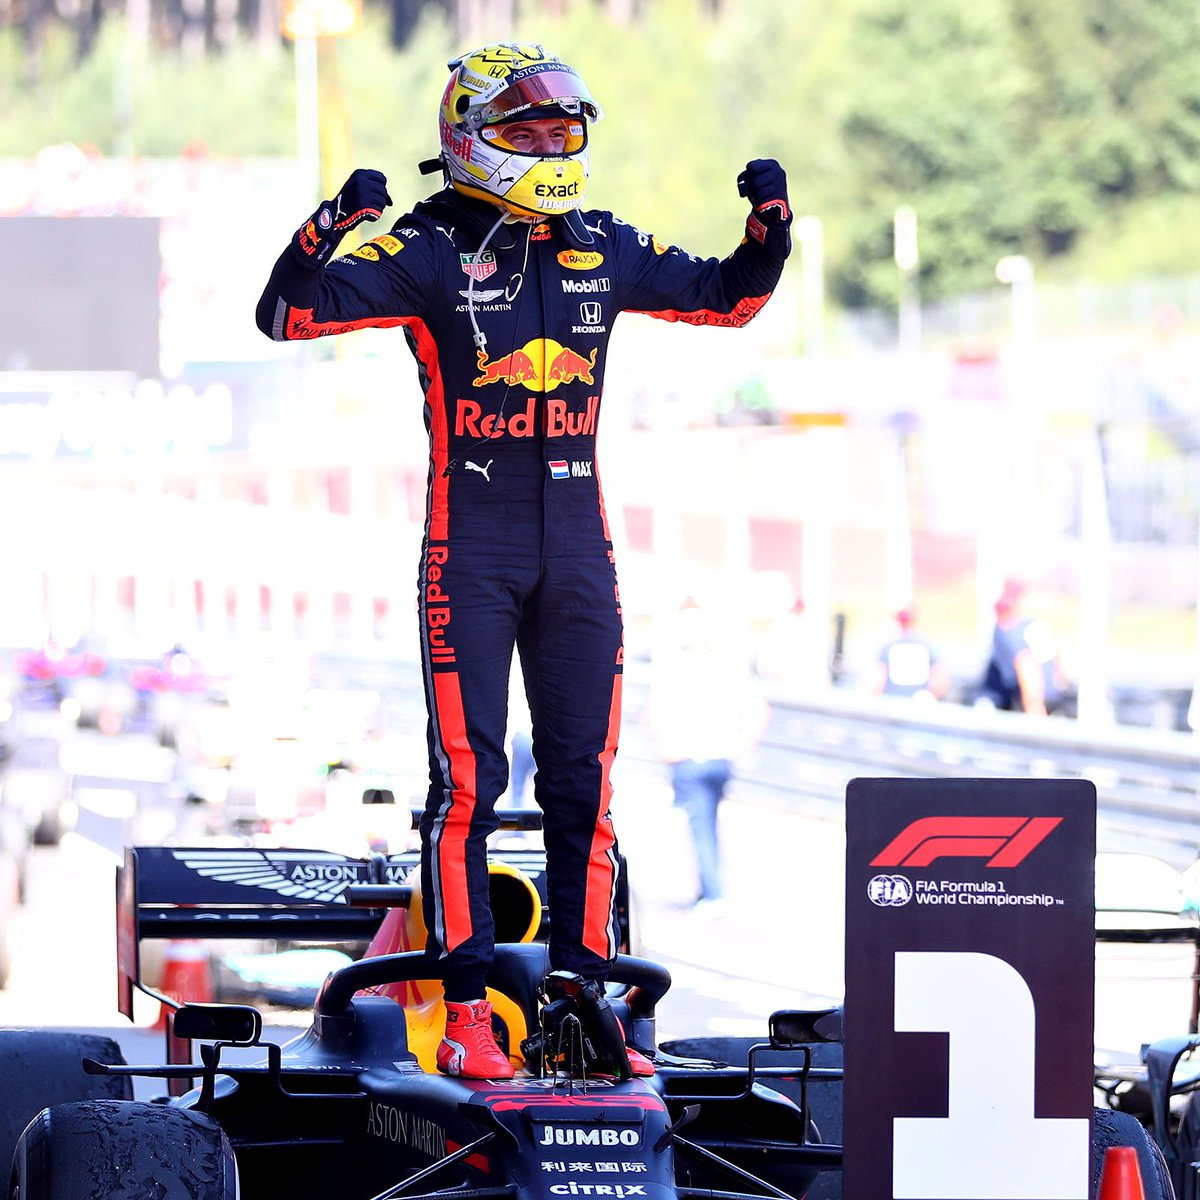 It was an incredible race and an amazing win! 💪🏻 Thank you @redbullracing, thank you @HondaRacingF1, thank you fans, thank you all! 🙌 #KeepPushing #OrangeArmy #AustrianGP 🇦🇹